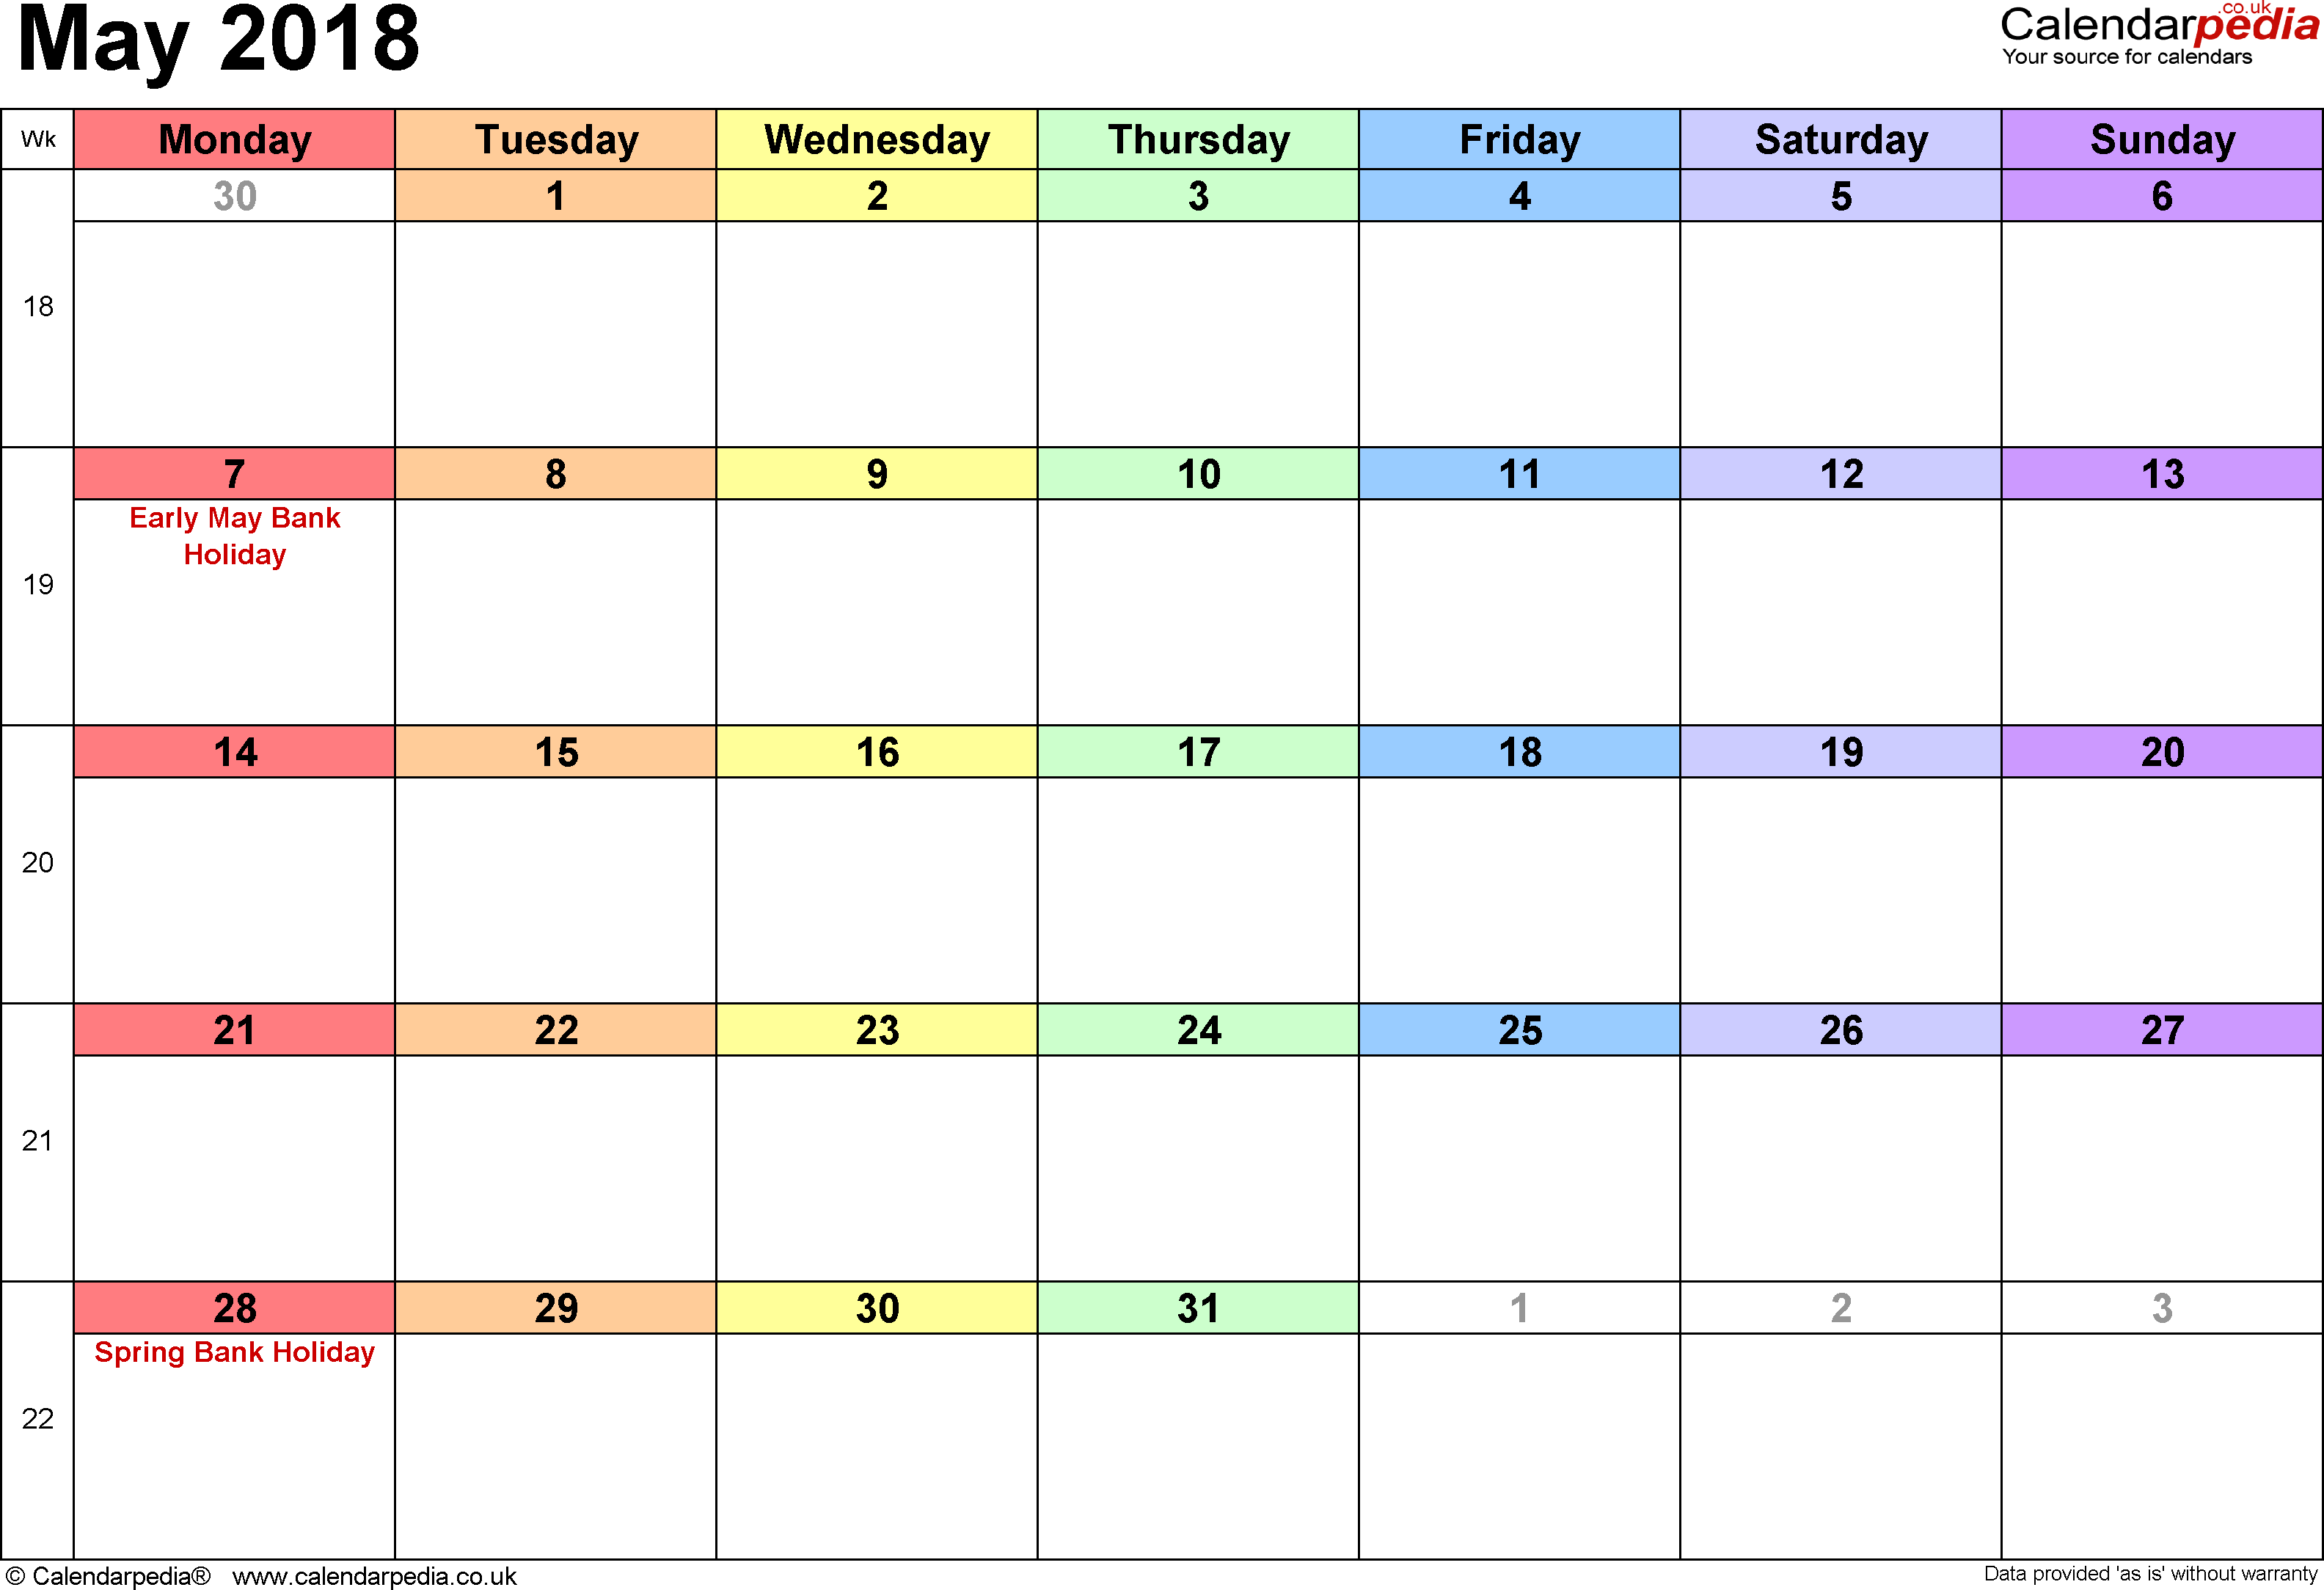 Malayasia Calendar May 2018